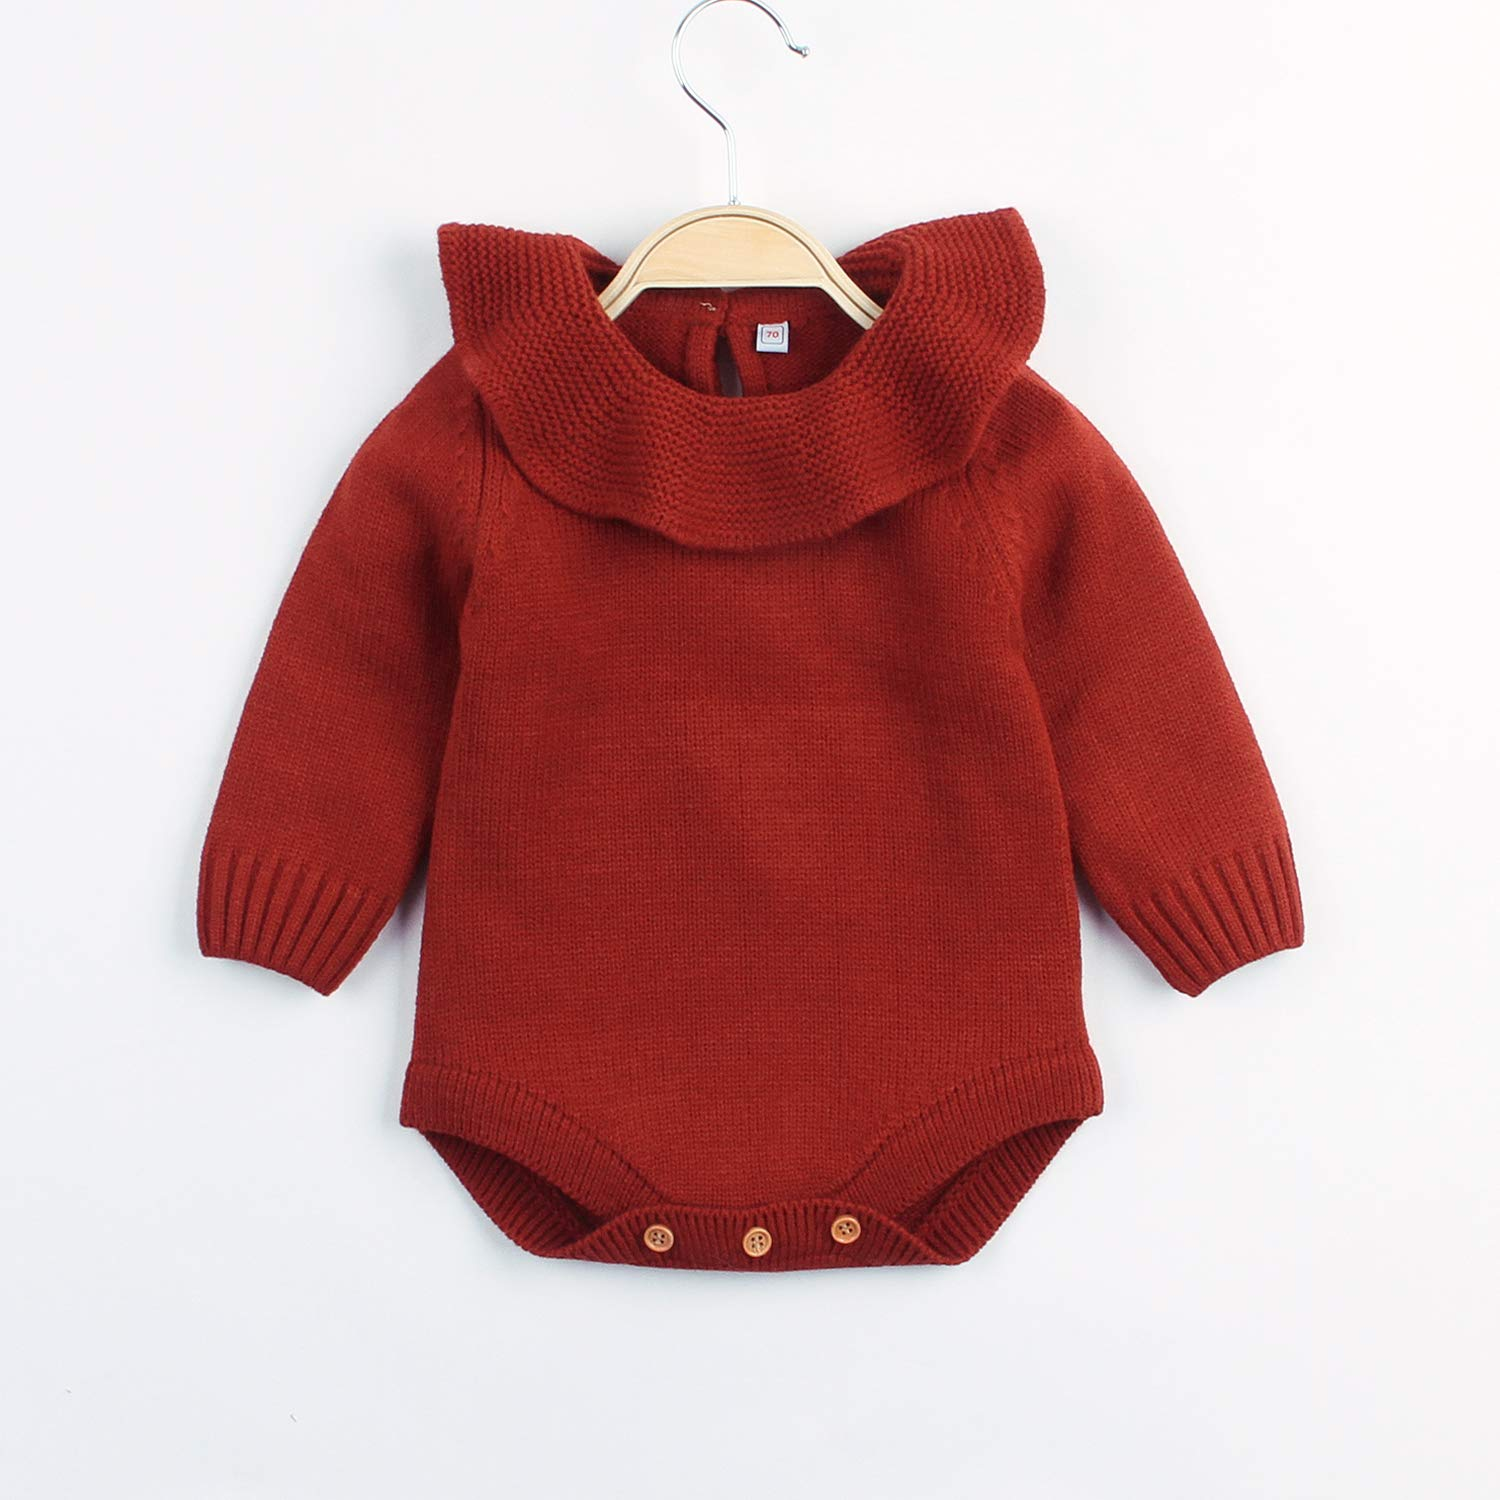 Funnykids Baby Girls Romper Knitted Ruffle Long Sleeve Jumpsuit Baby Girl Romper Autumn Winter Casual Clothing